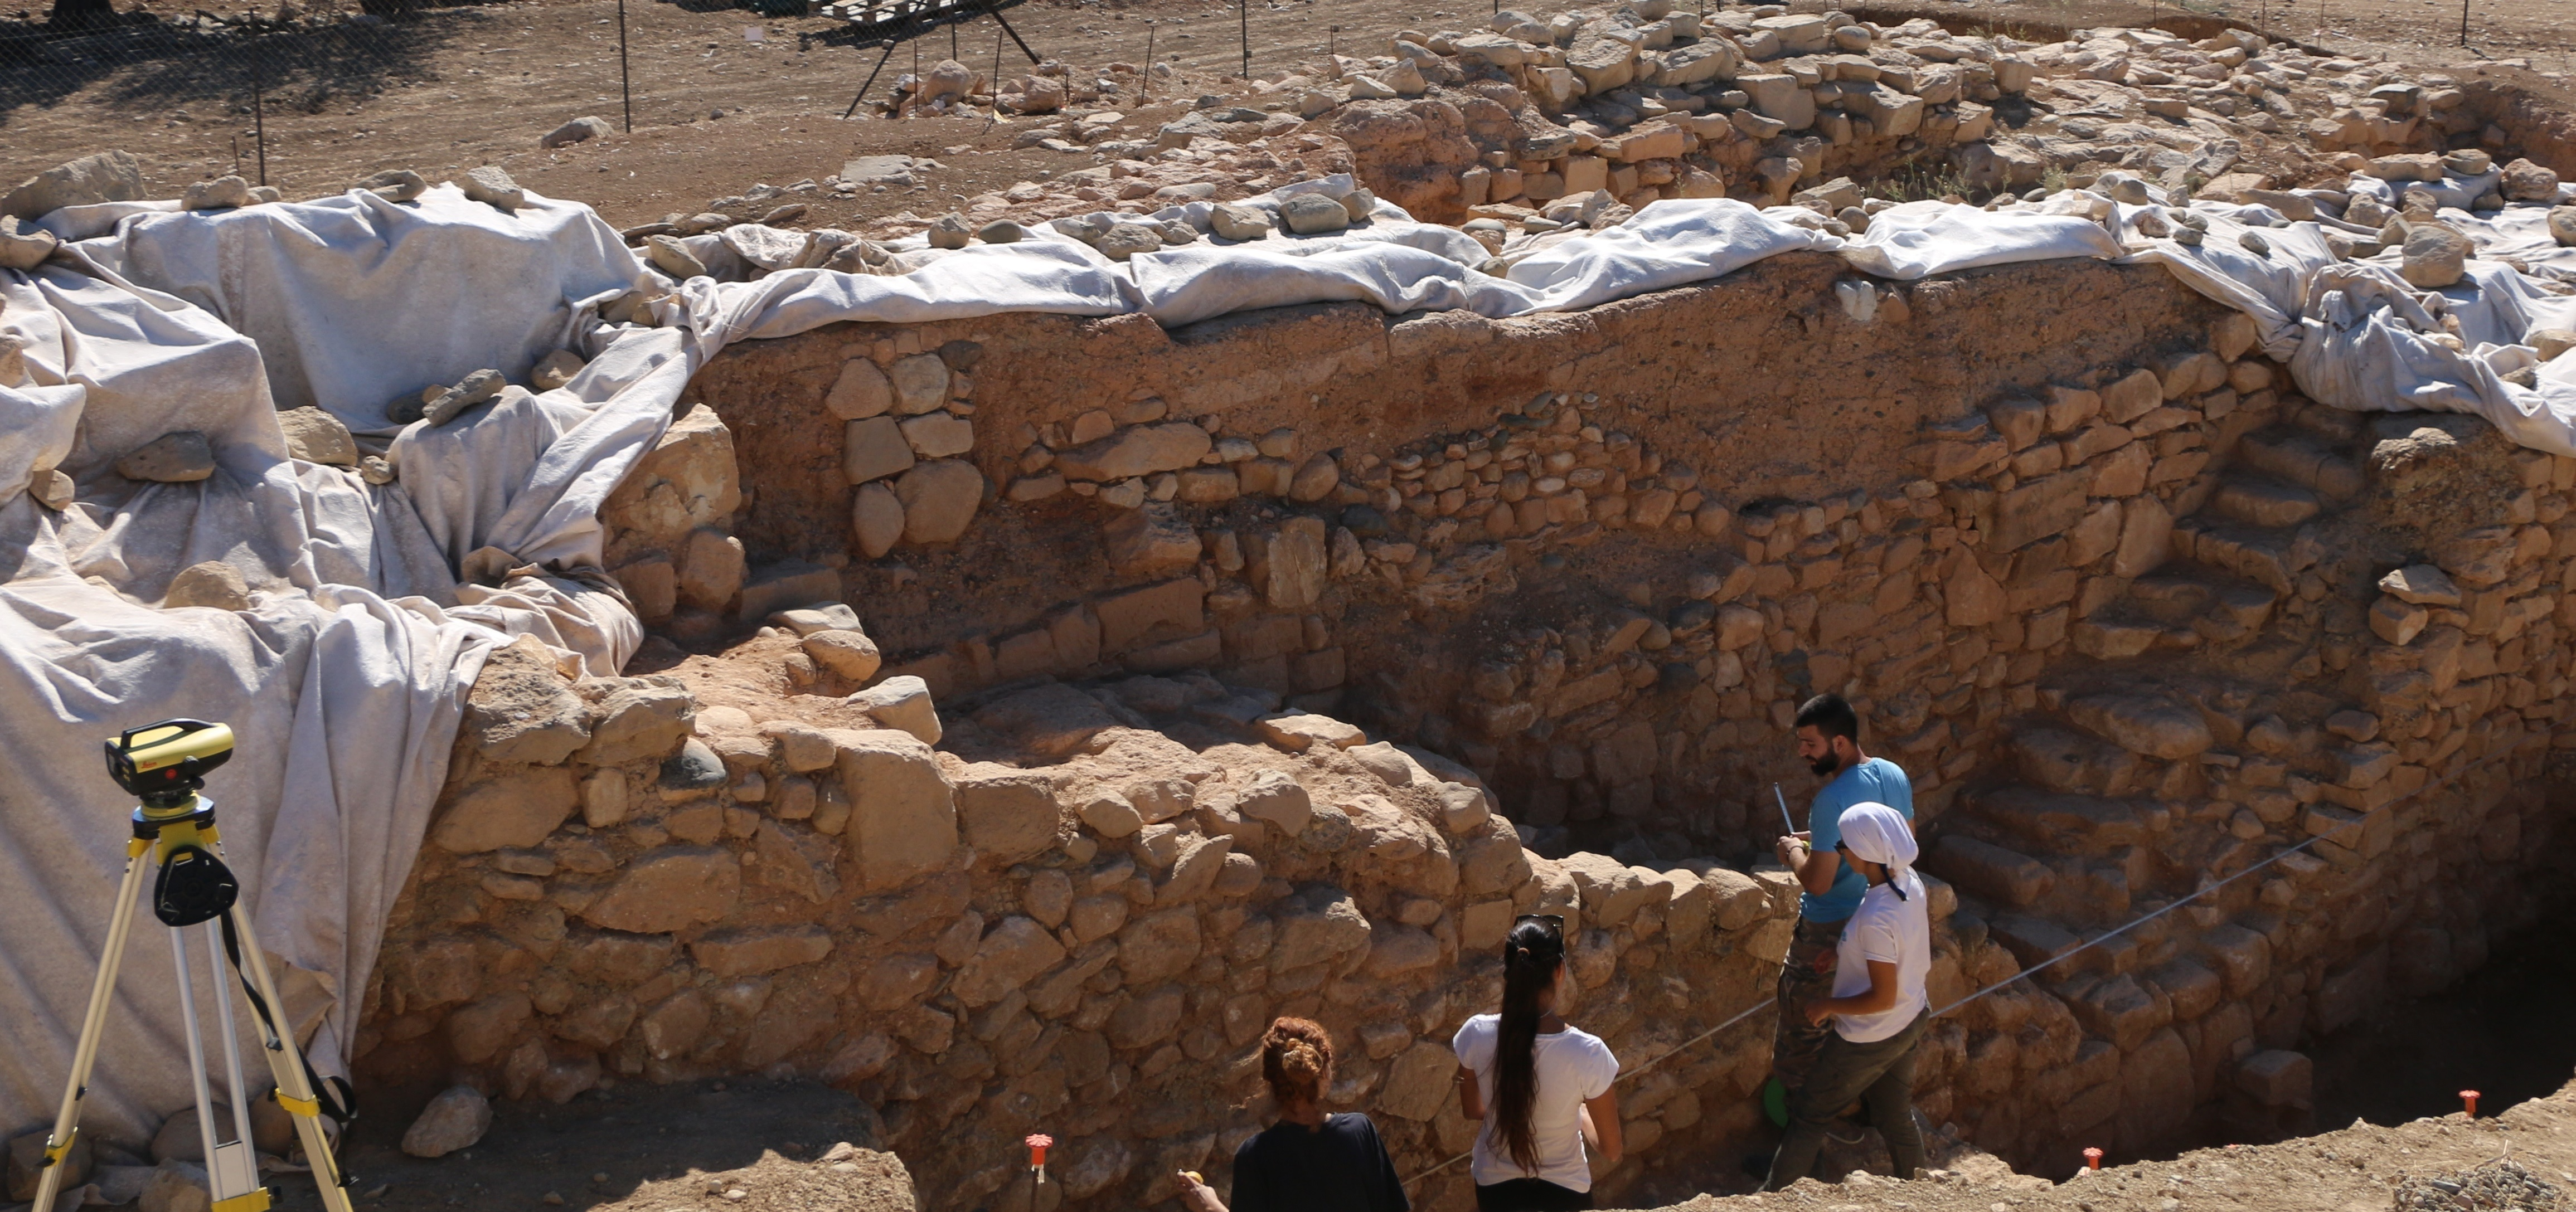 8. The staircases of the monument uncovered on the eastern side of Laona